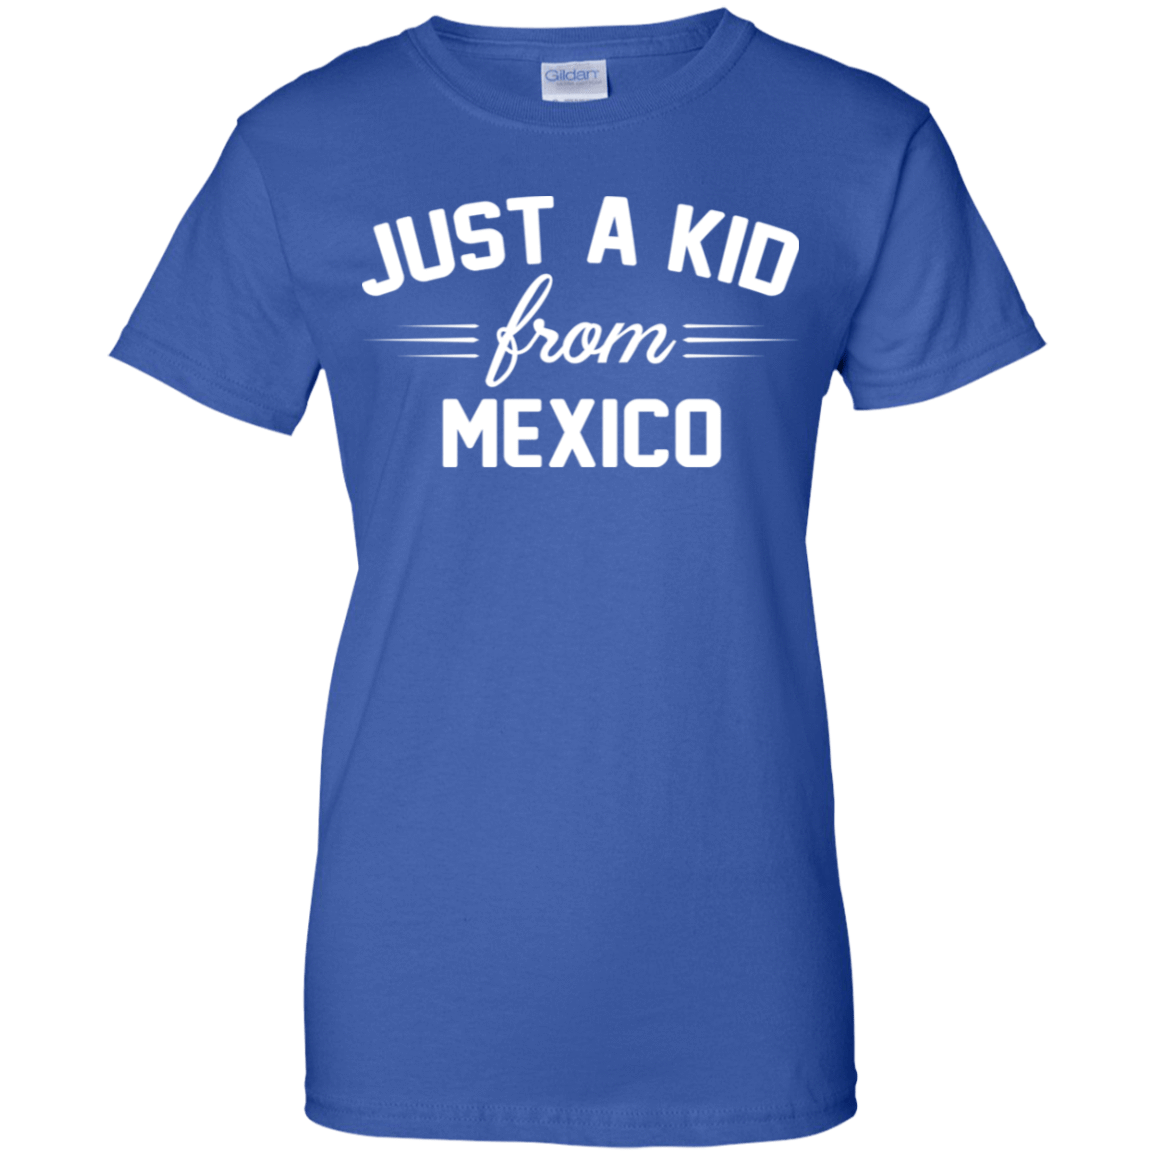 Just a Kid Store | Mexico T-Shirts, Hoodie, Tank 939-9264-72091593-44807 - Tee Ript